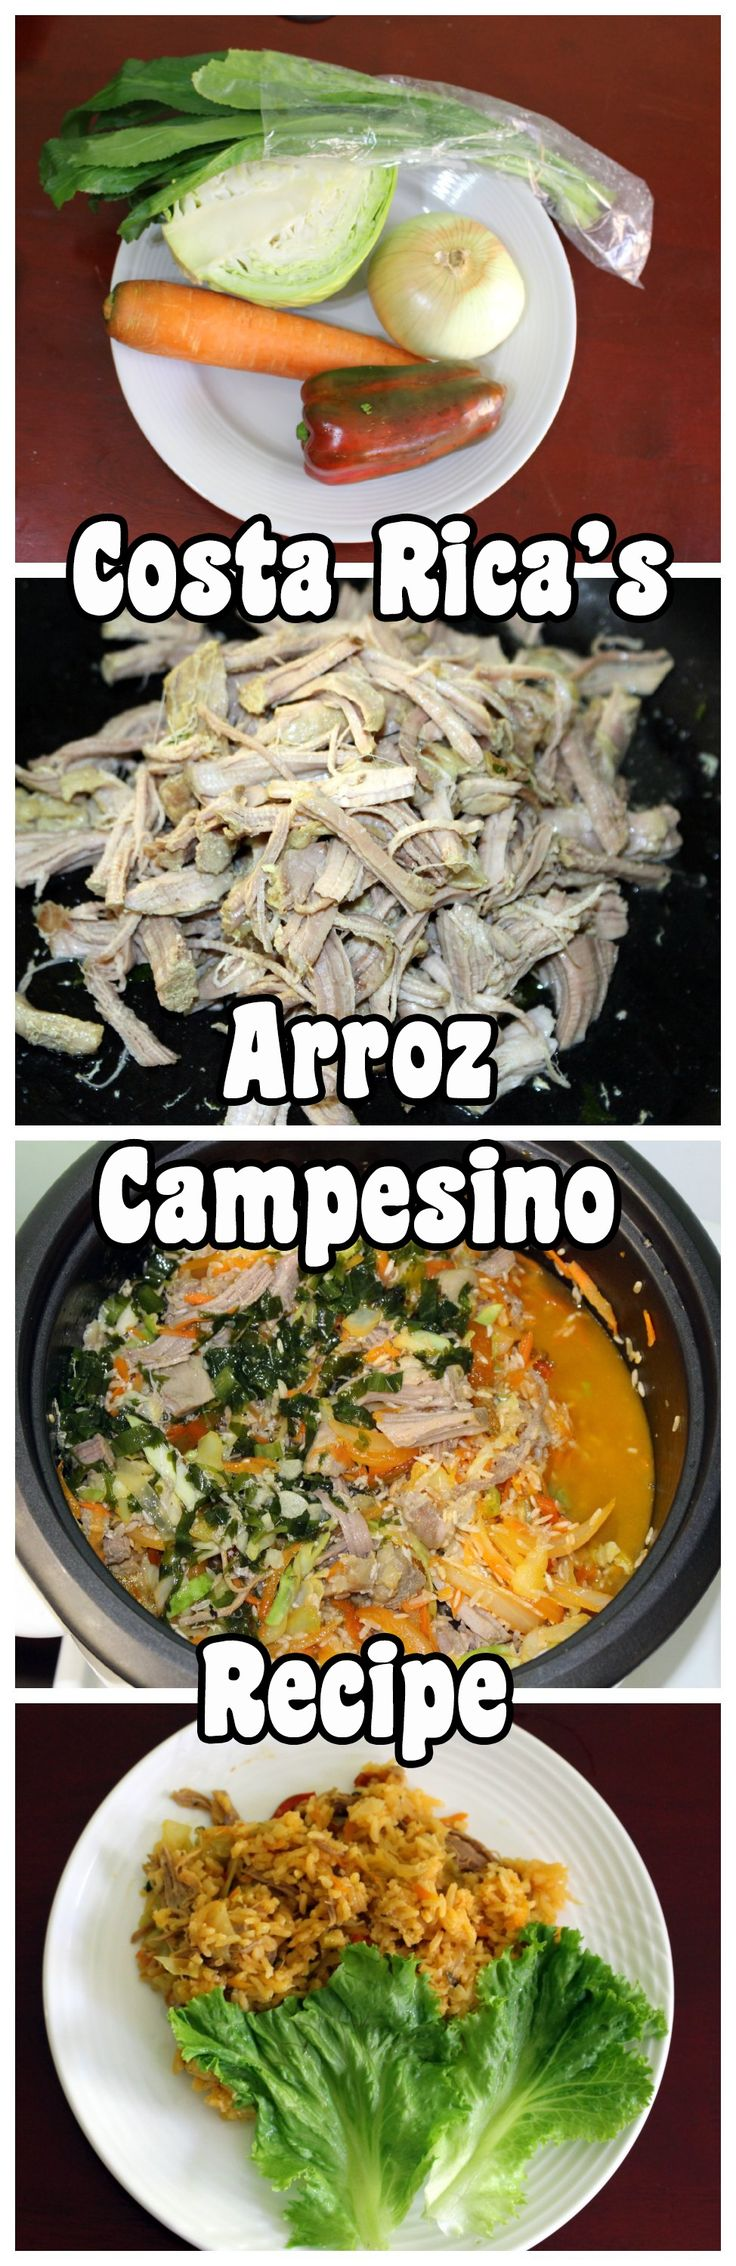 17 best images about tried and true on pinterest traditional costa rican arroz campesino recipe forumfinder Choice Image